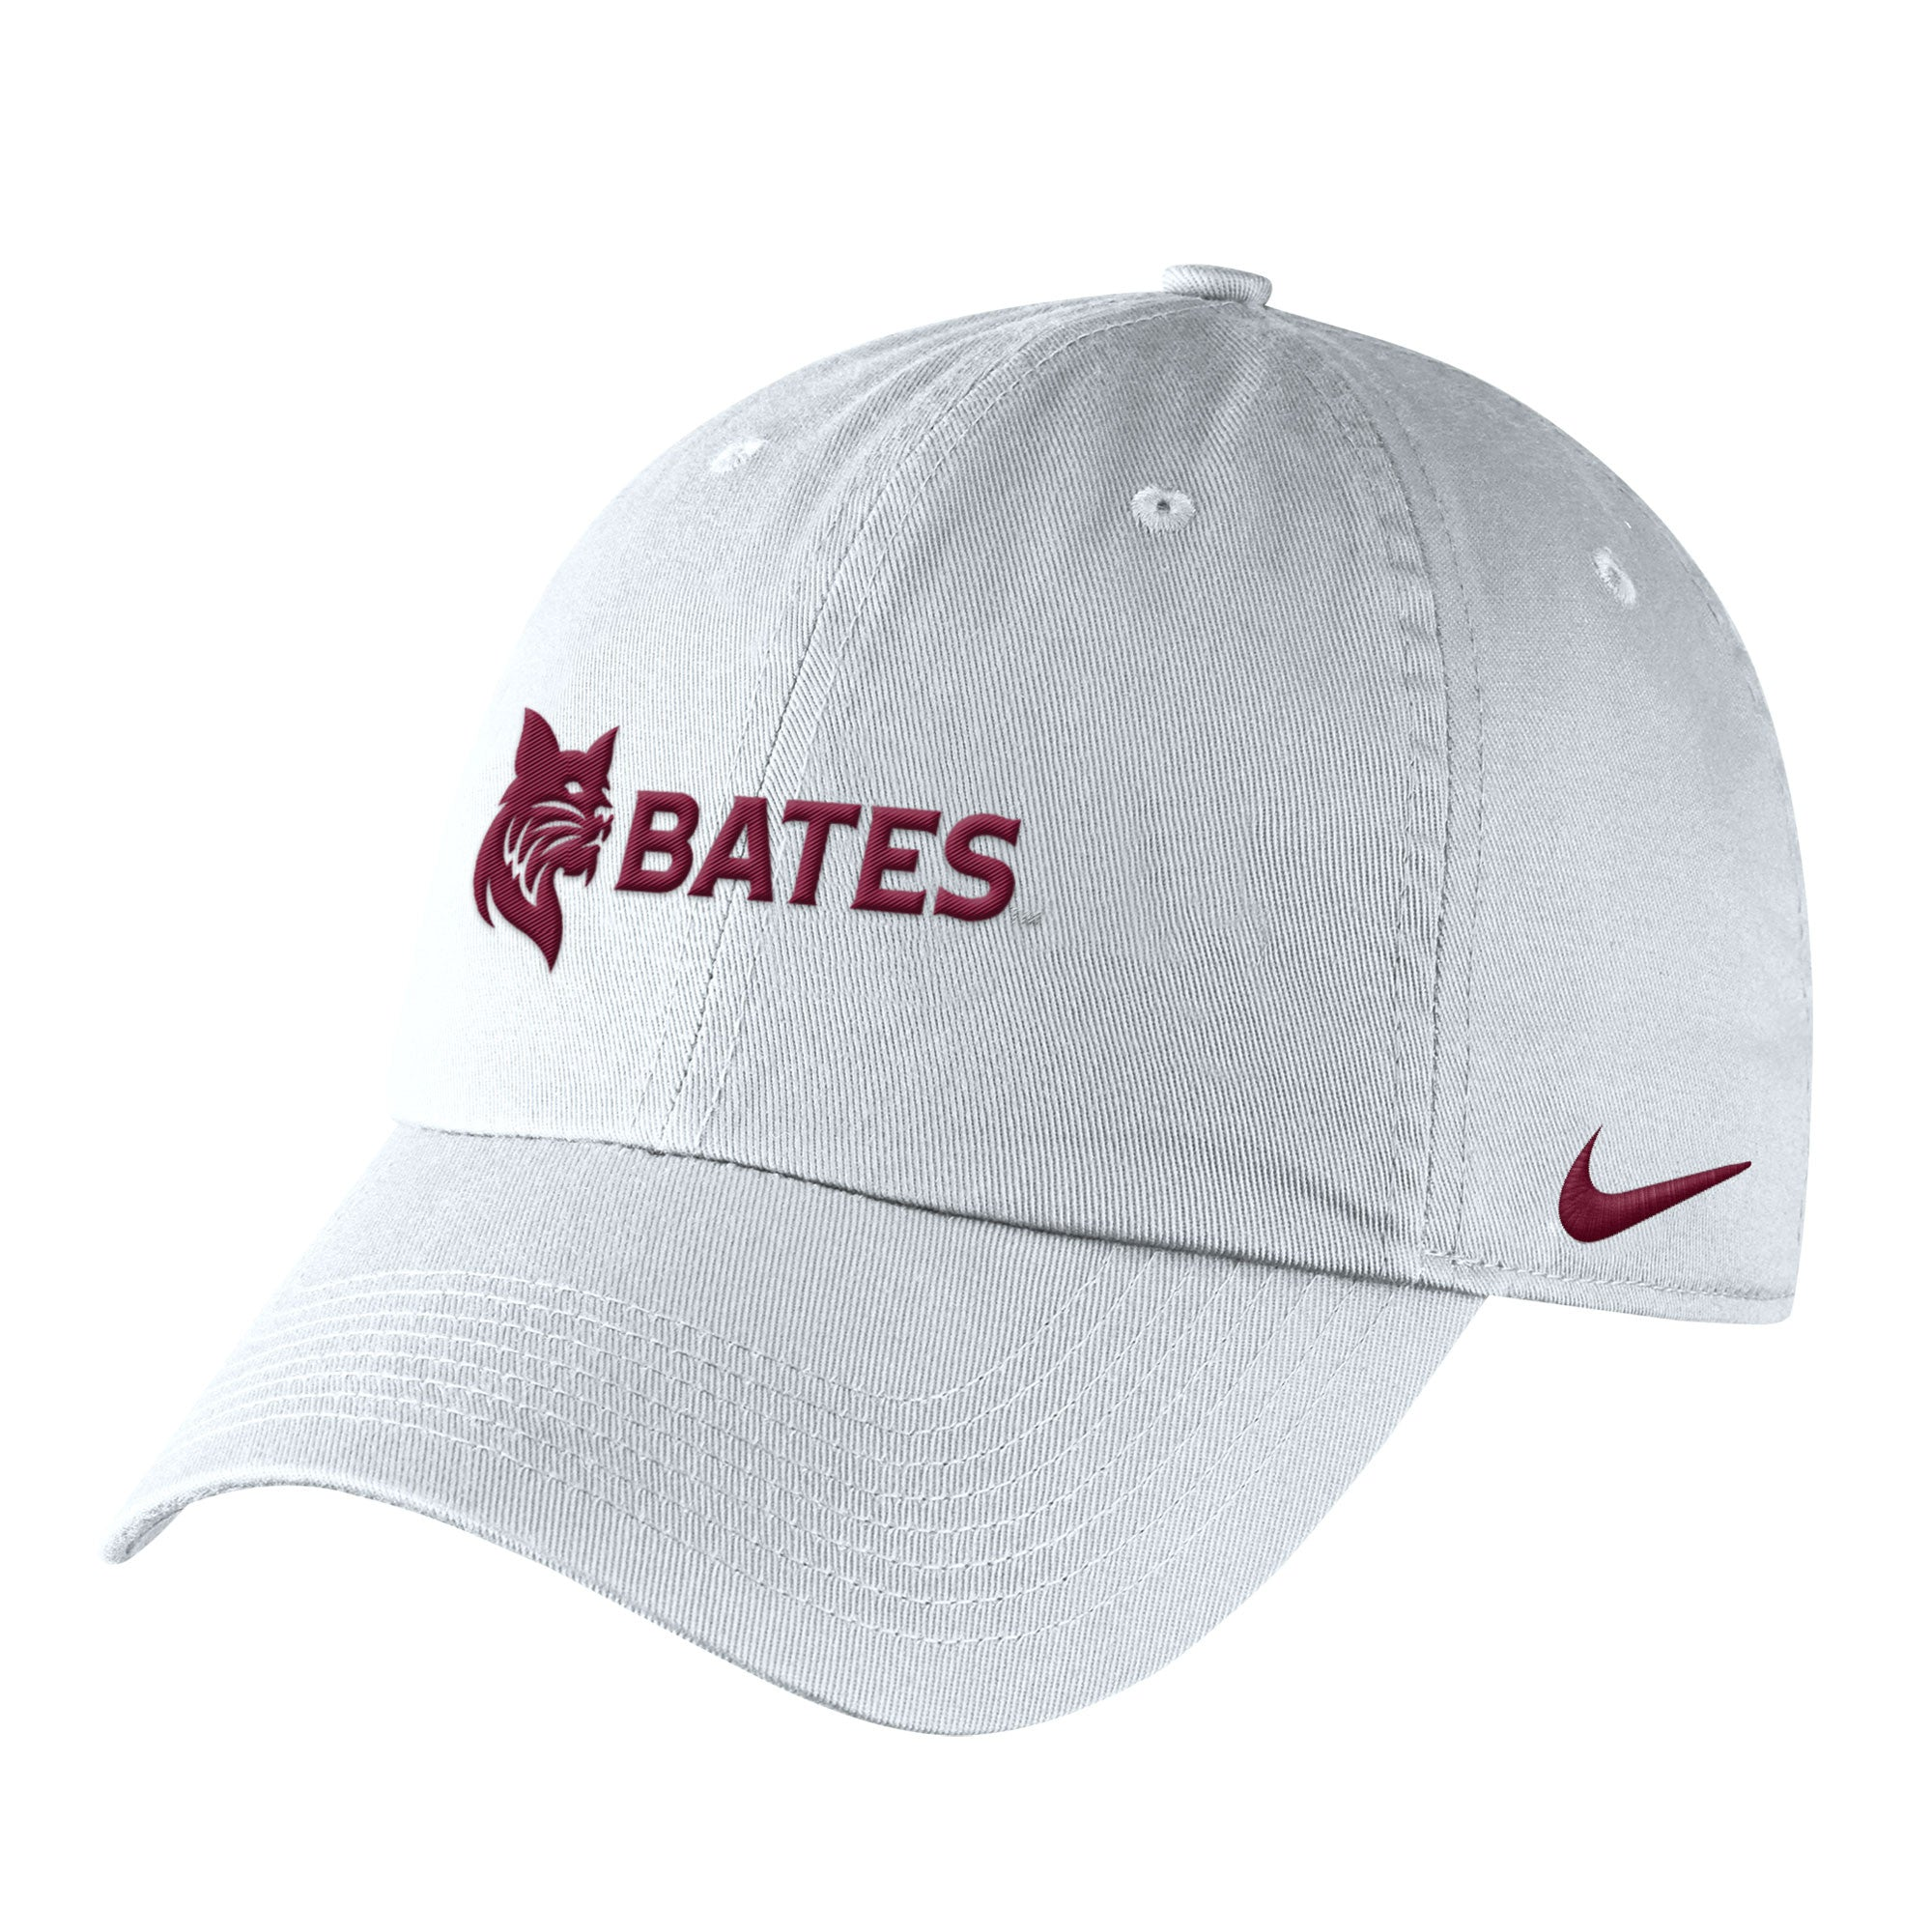 Nike Dri-Fit White Cap - Hats